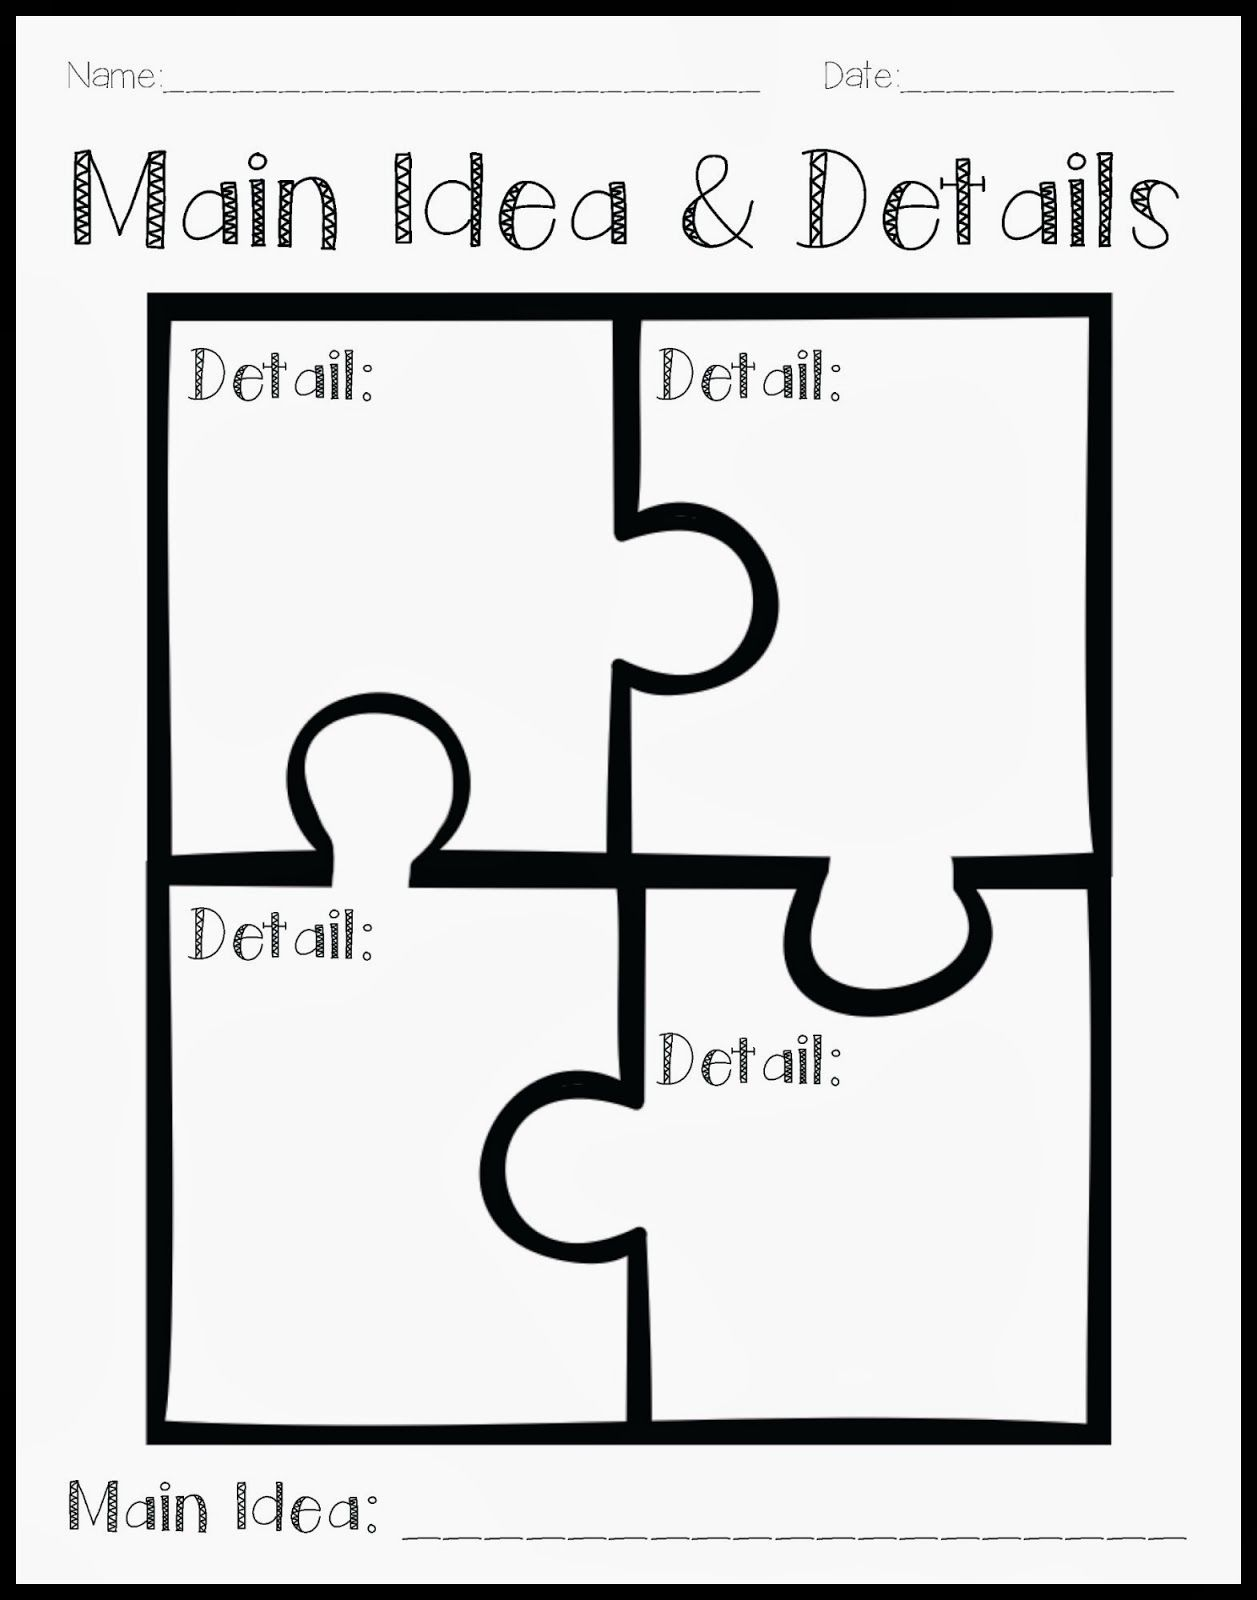 worksheet Main Idea Worksheets For 2nd Grade 1000 images about main idea activities for home or speech therapy on pinterest texts graphic organizers and anchors